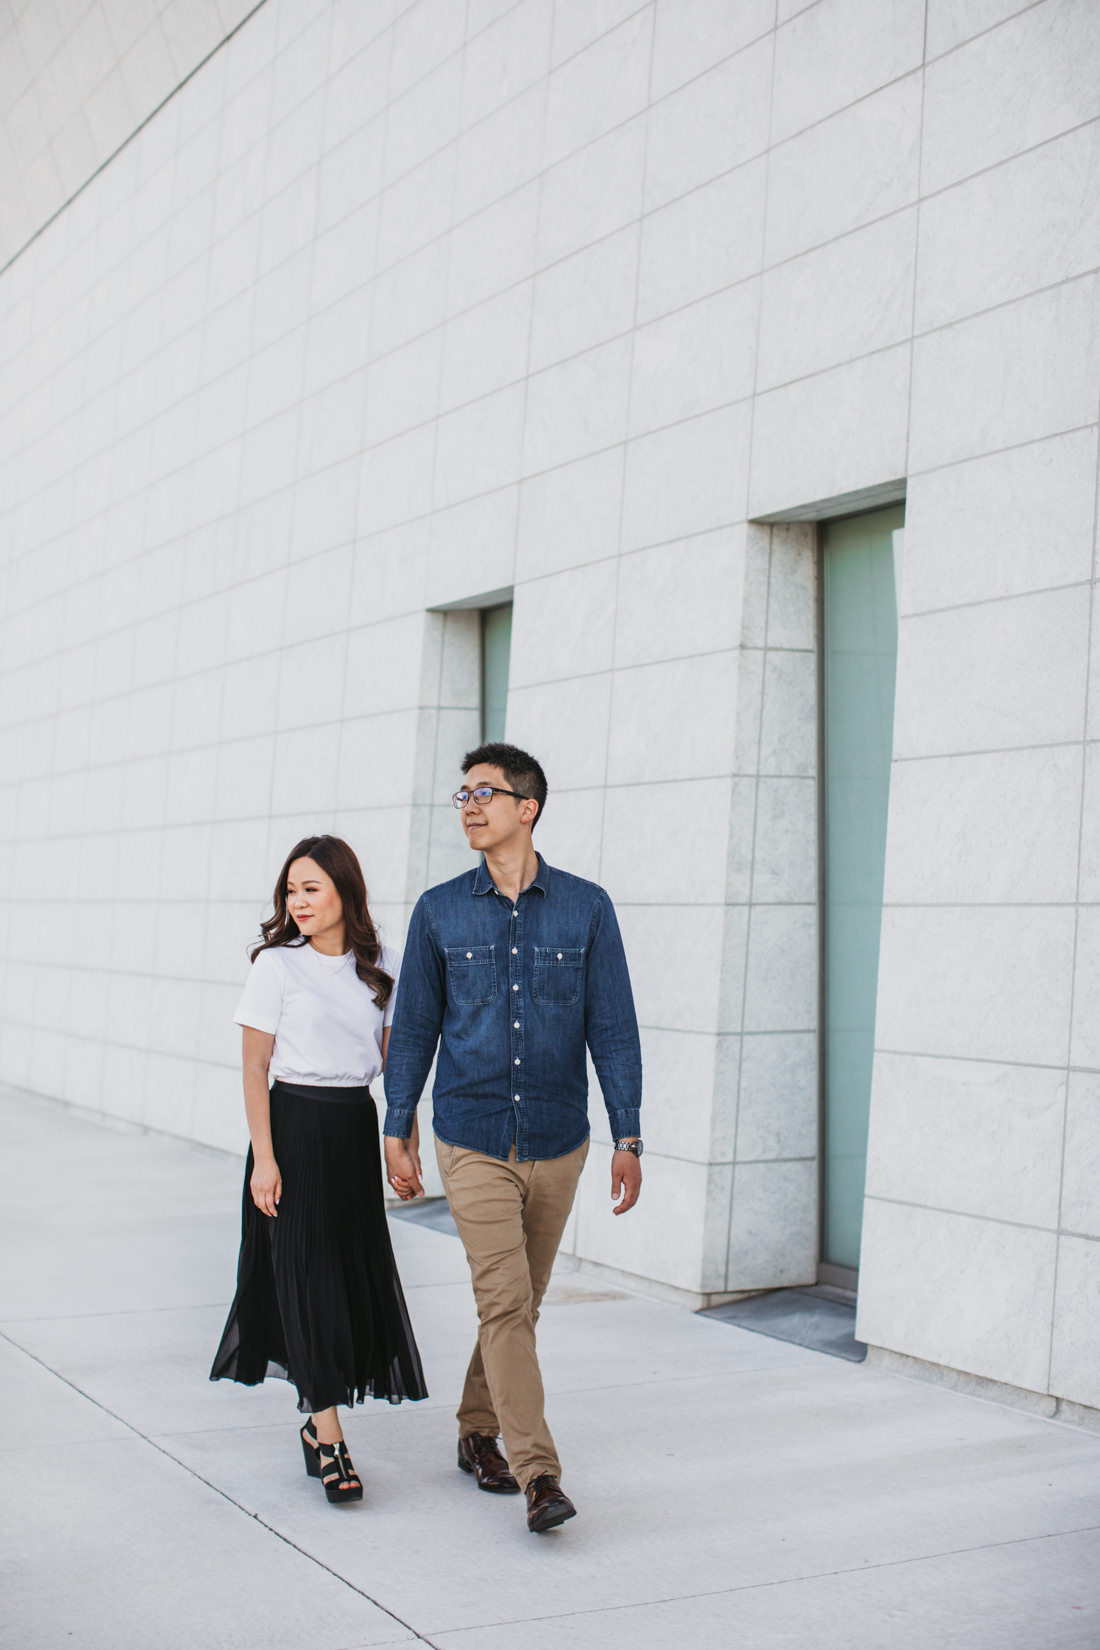 Couple Walking outside modern building | Aga Khan Museum engagement | Minimalist portrait location | Toronto Wedding Photographer | EightyFifth Street Photography